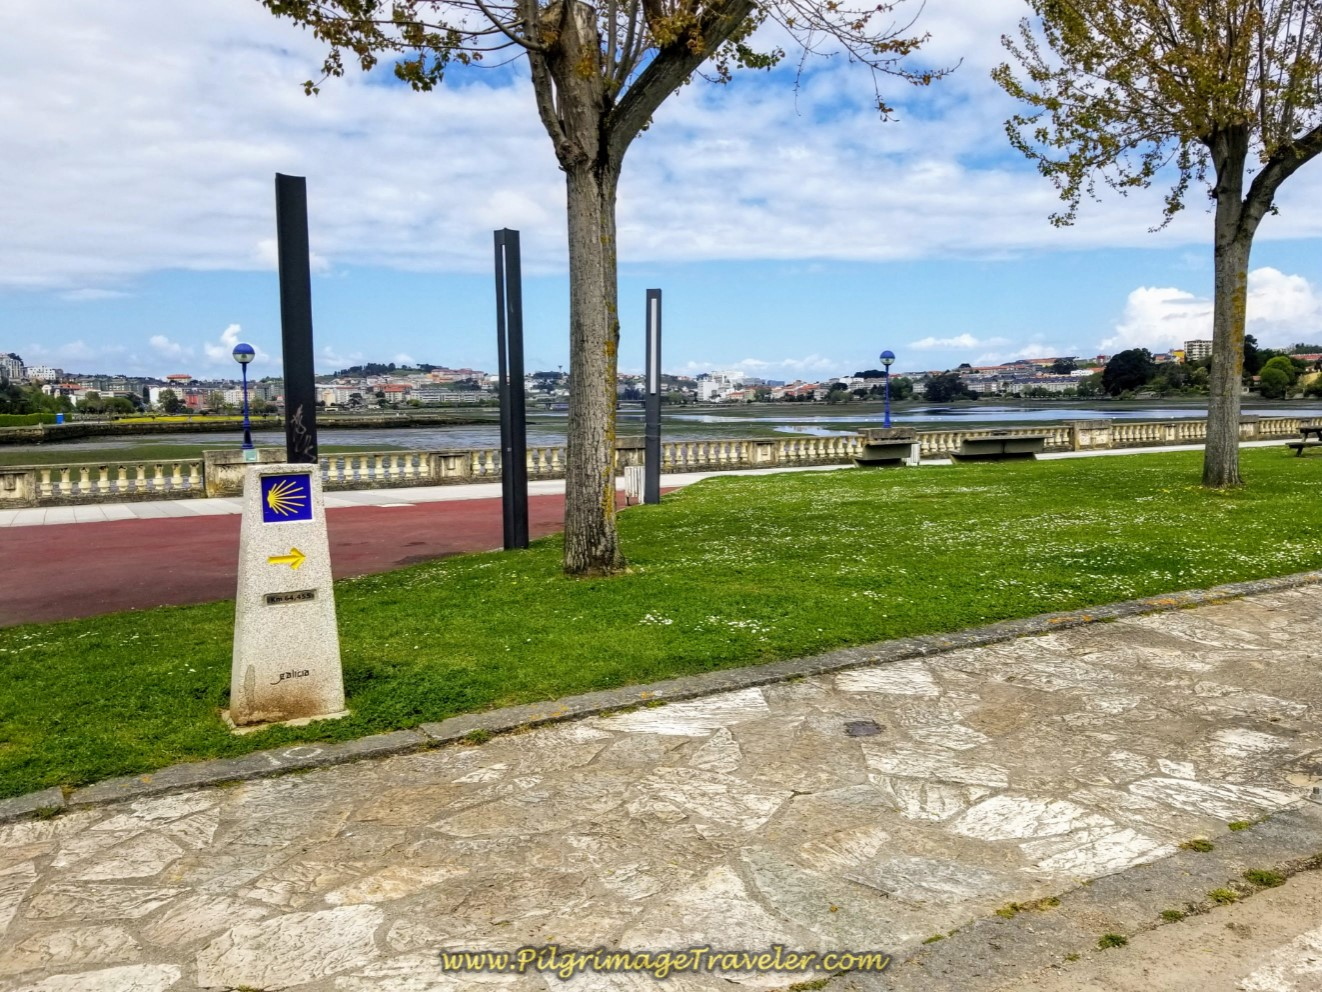 Kilometer Marker 64.4 by the River on day one of the La Coruña Arm of the Camino Inglés